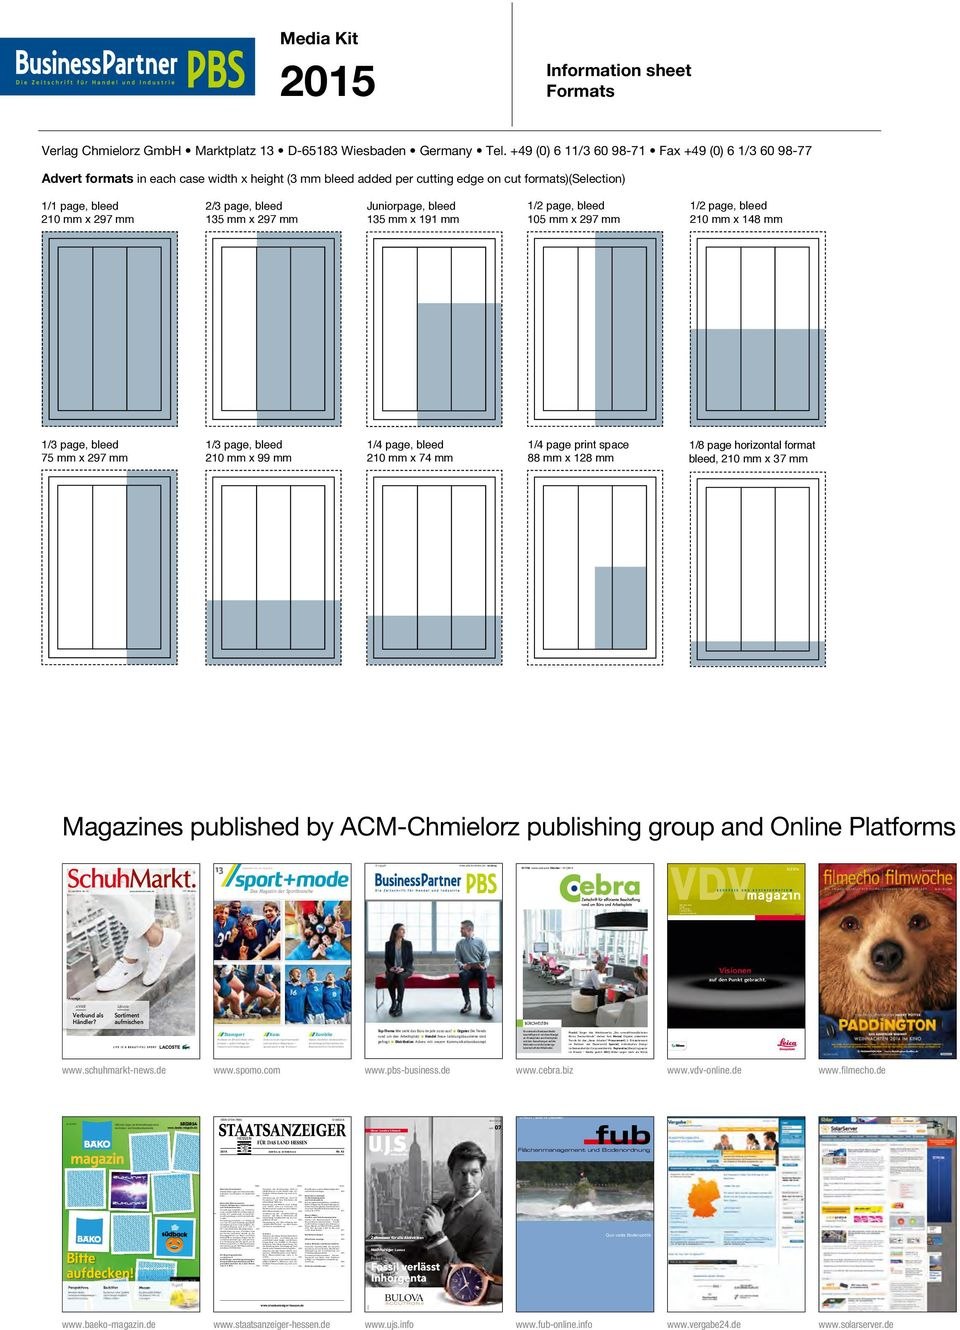 1/4 page print space 88 mm x 128 mm 1/8 page horizontal format bleed, 210 mm x 37 mm Magazines published by ACM-Chmielorz publishing group and Online Platforms 13 20. Juni 2014 Nr. 13 www.